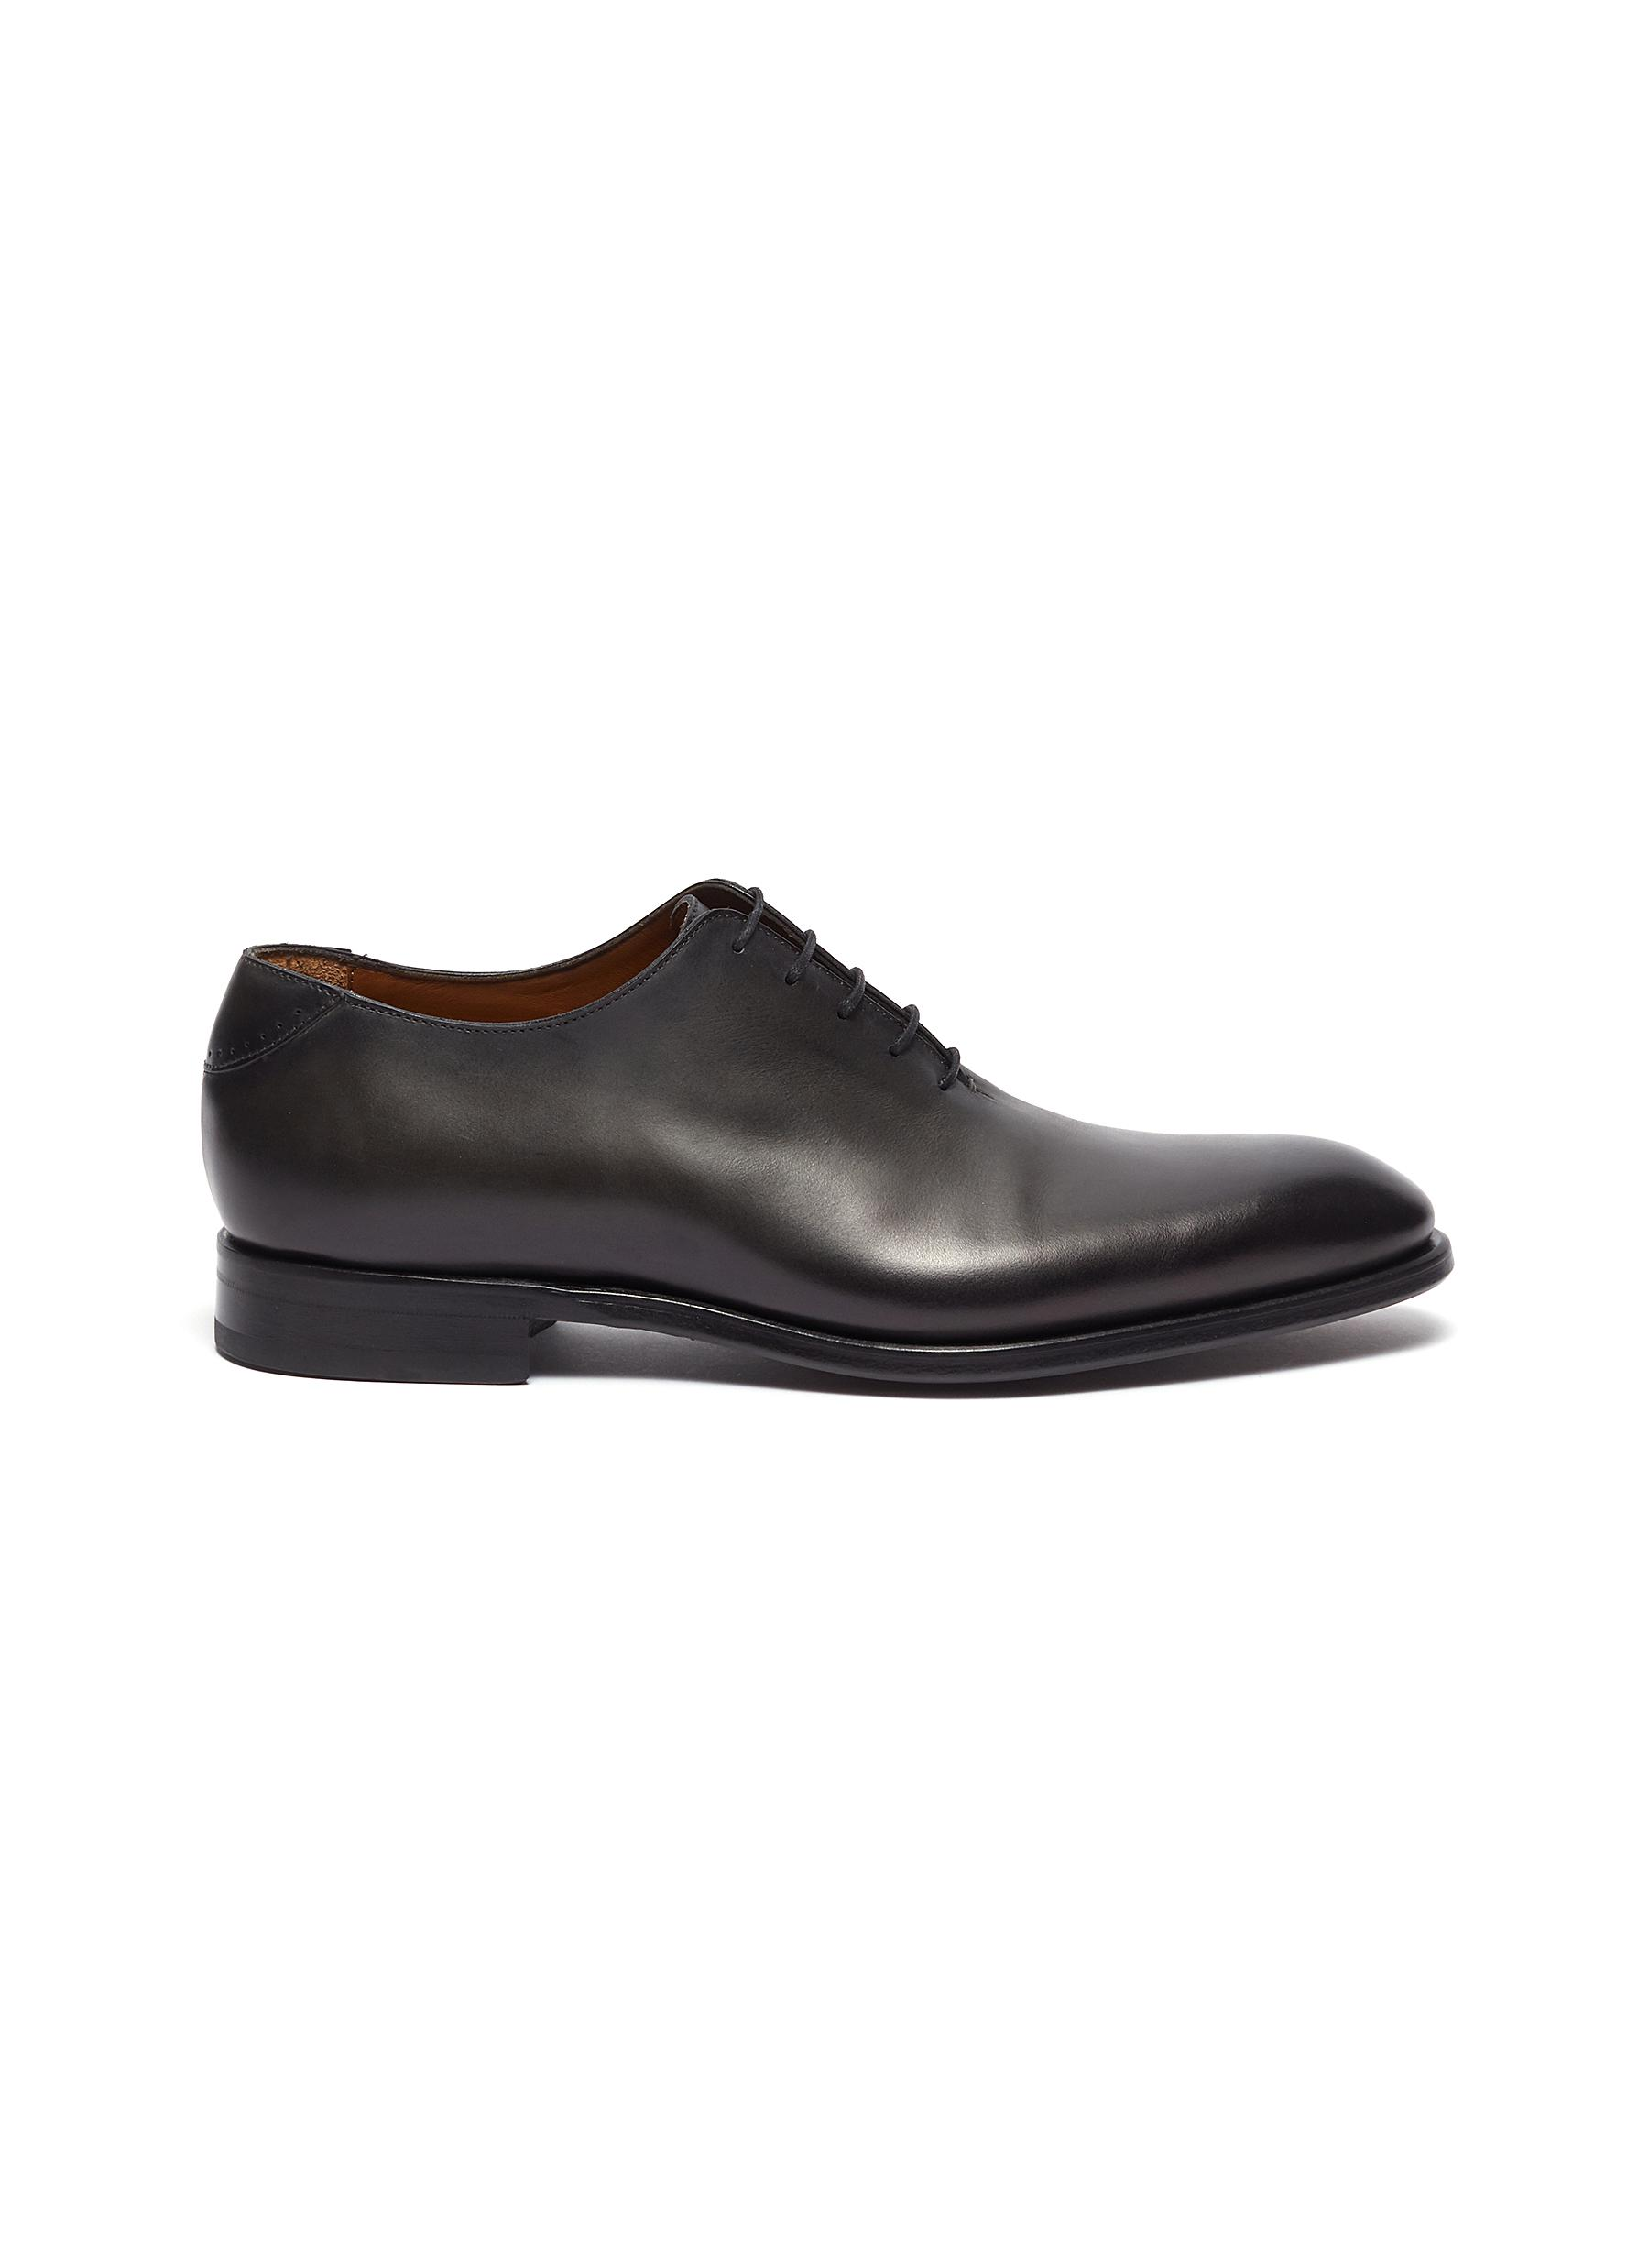 Old west whole cut leather oxford shoes